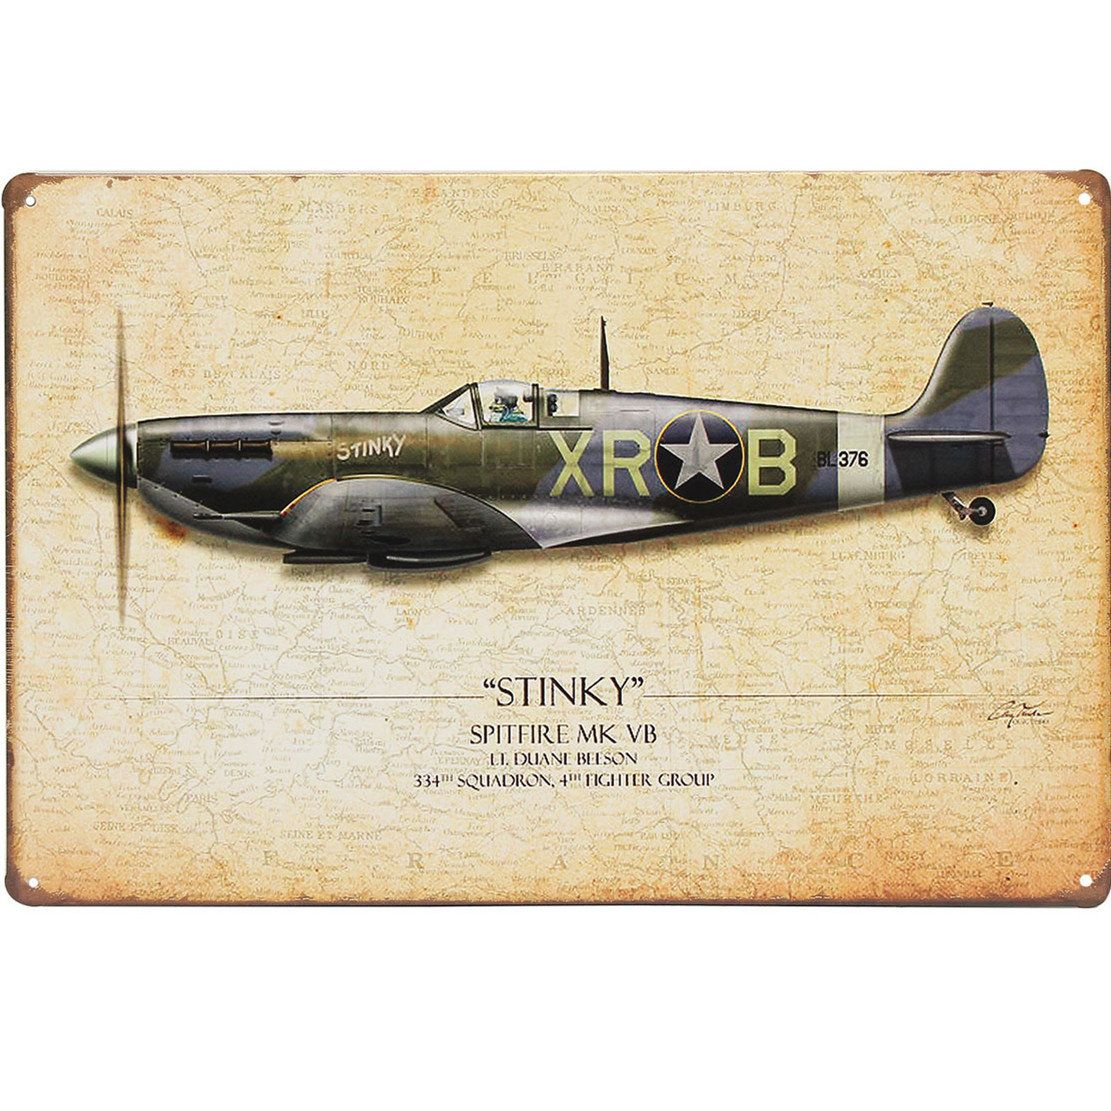 20x30cm STINKY MODEL XRB Sheet Metal Sign Metal Painting Wall Decor ...